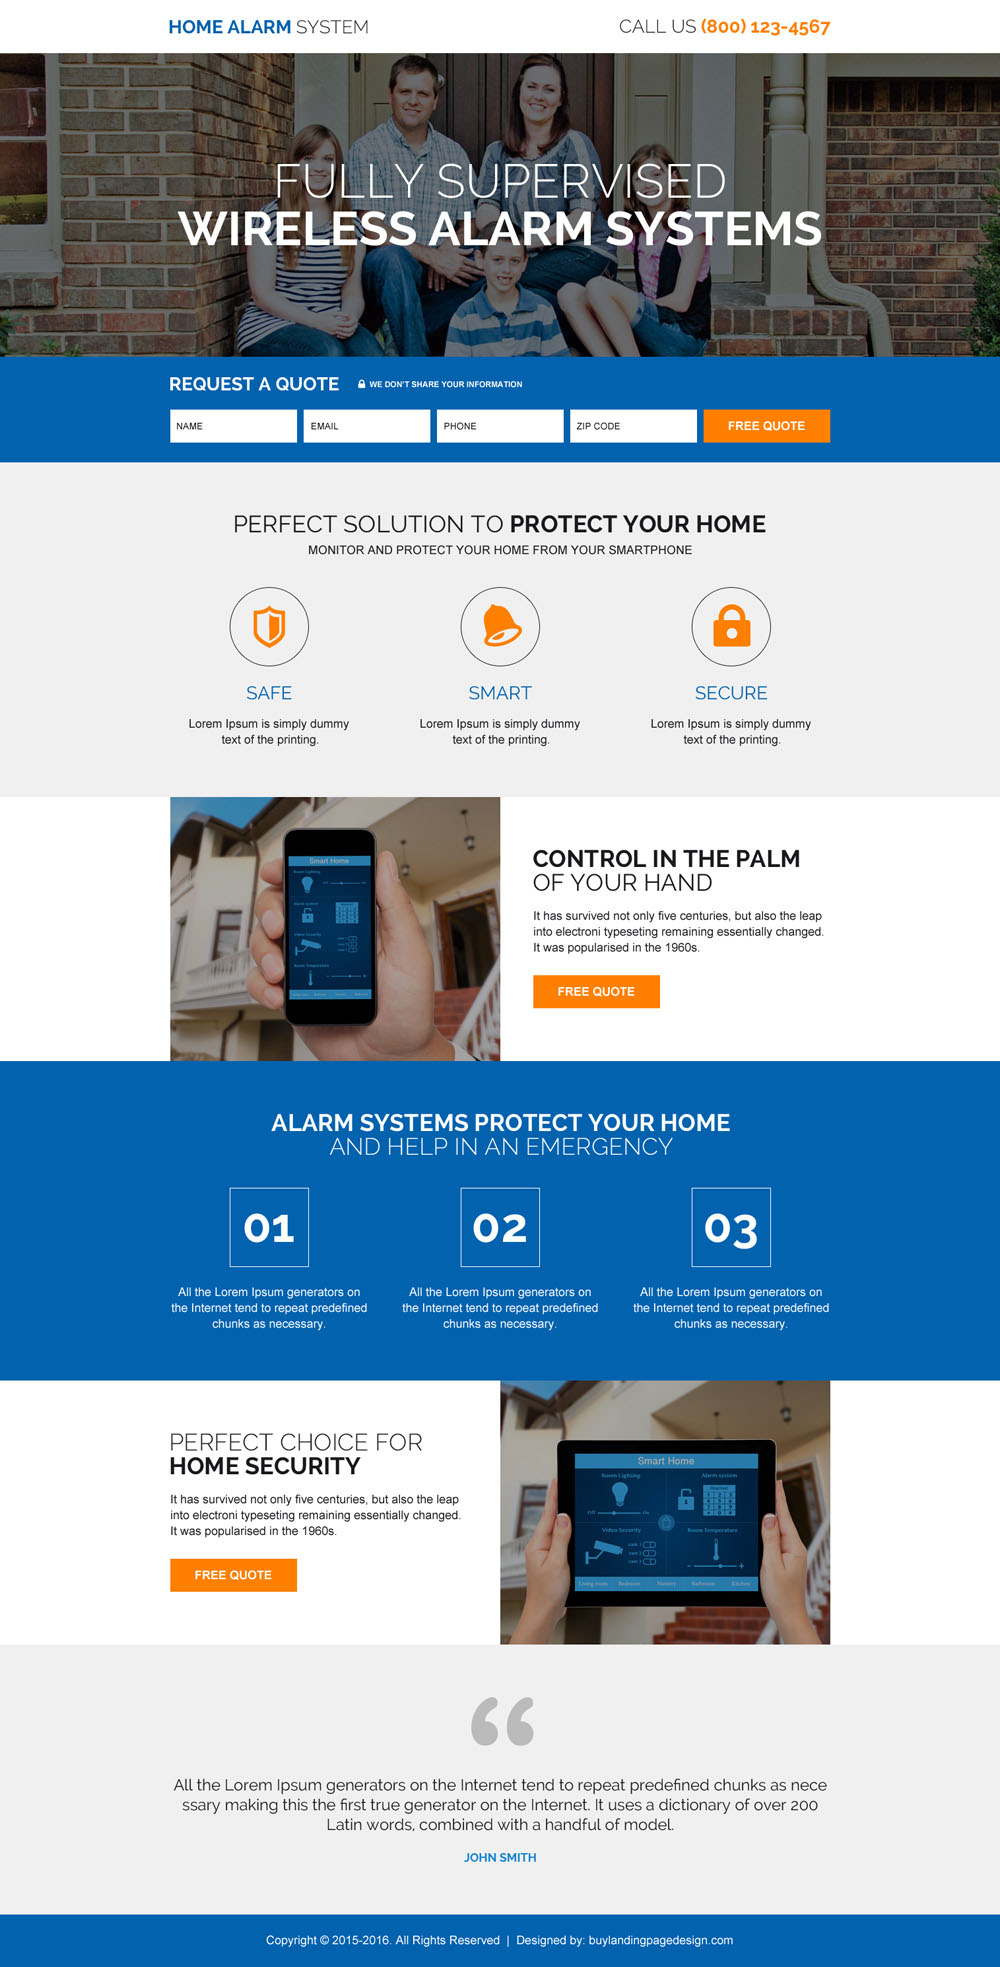 home-alarm-security-systems-lead-generation-free-quote-service-landing-page-008